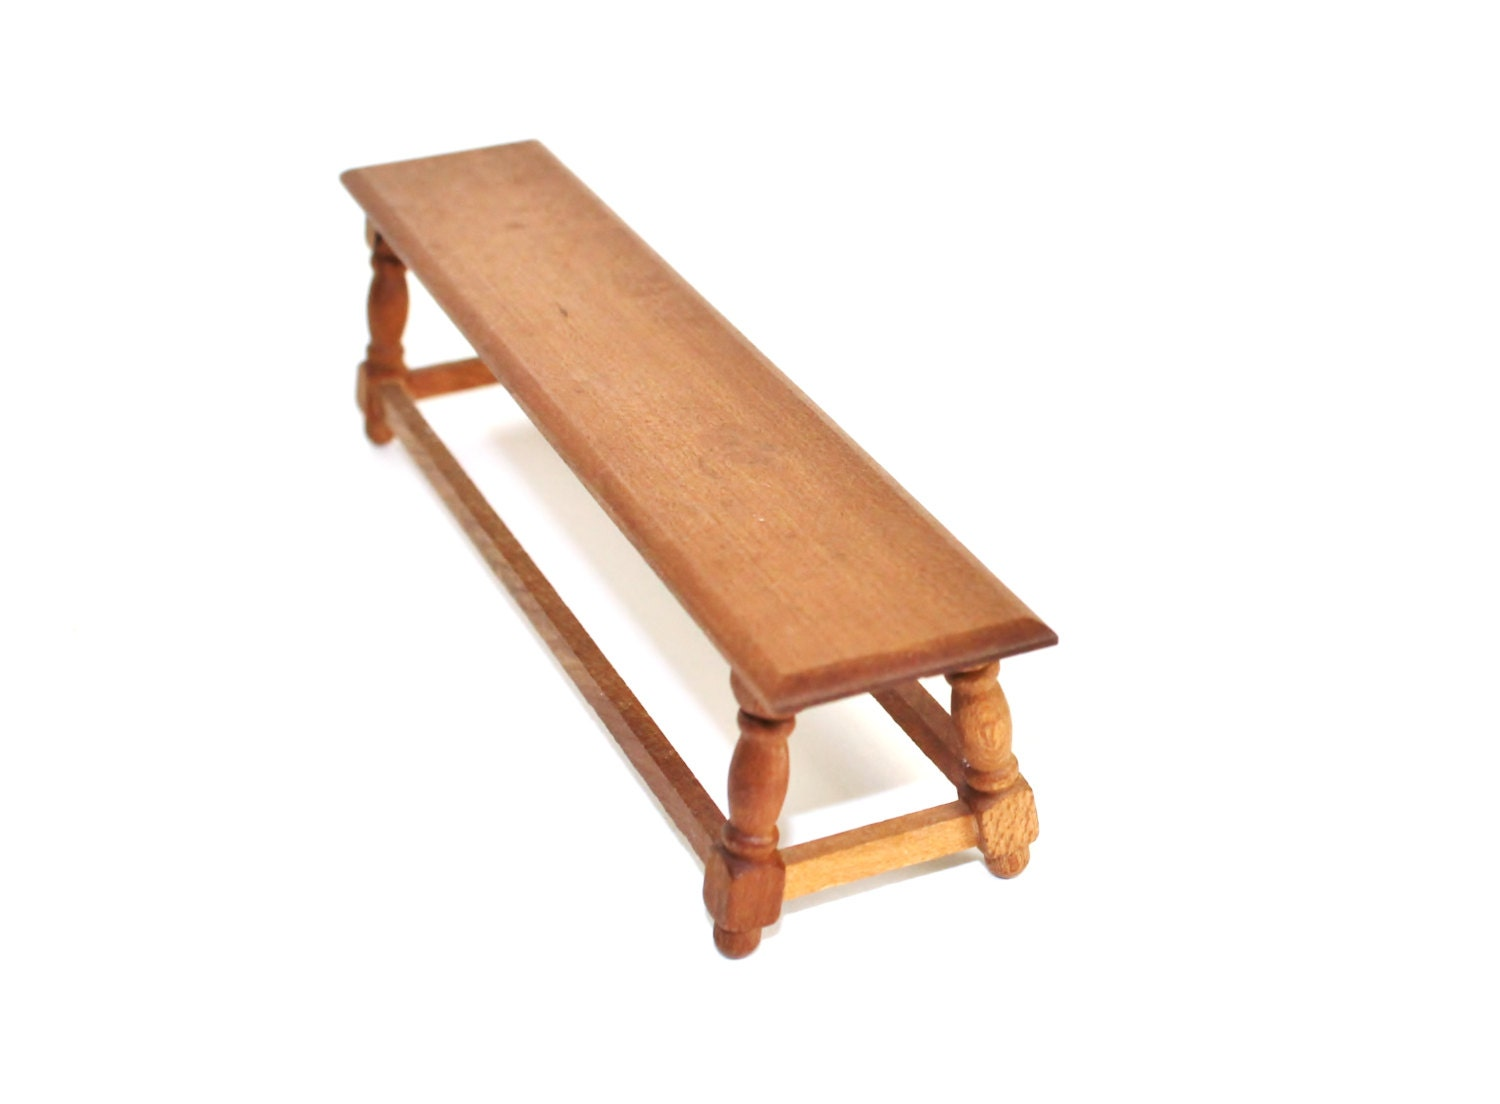 Vintage Miniature Furniture Wood Long Bench Dollhouse 1 12